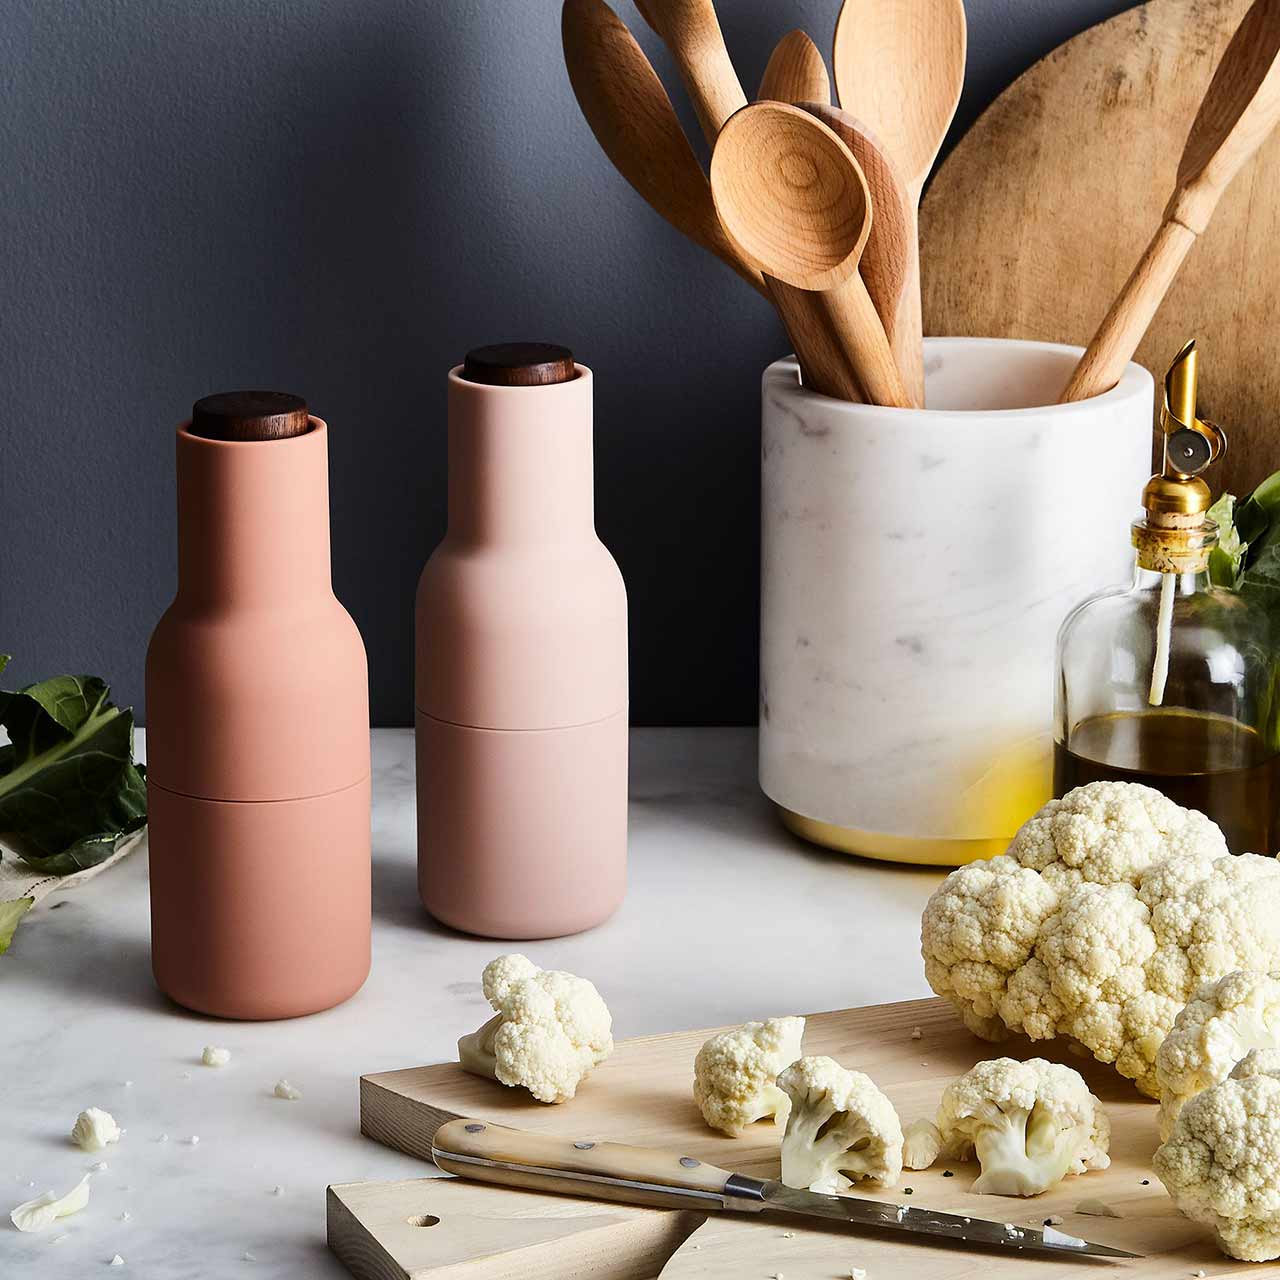 Menu Norm salt & pepper bottle grinder set in Nudes/walnut | the design gift shop